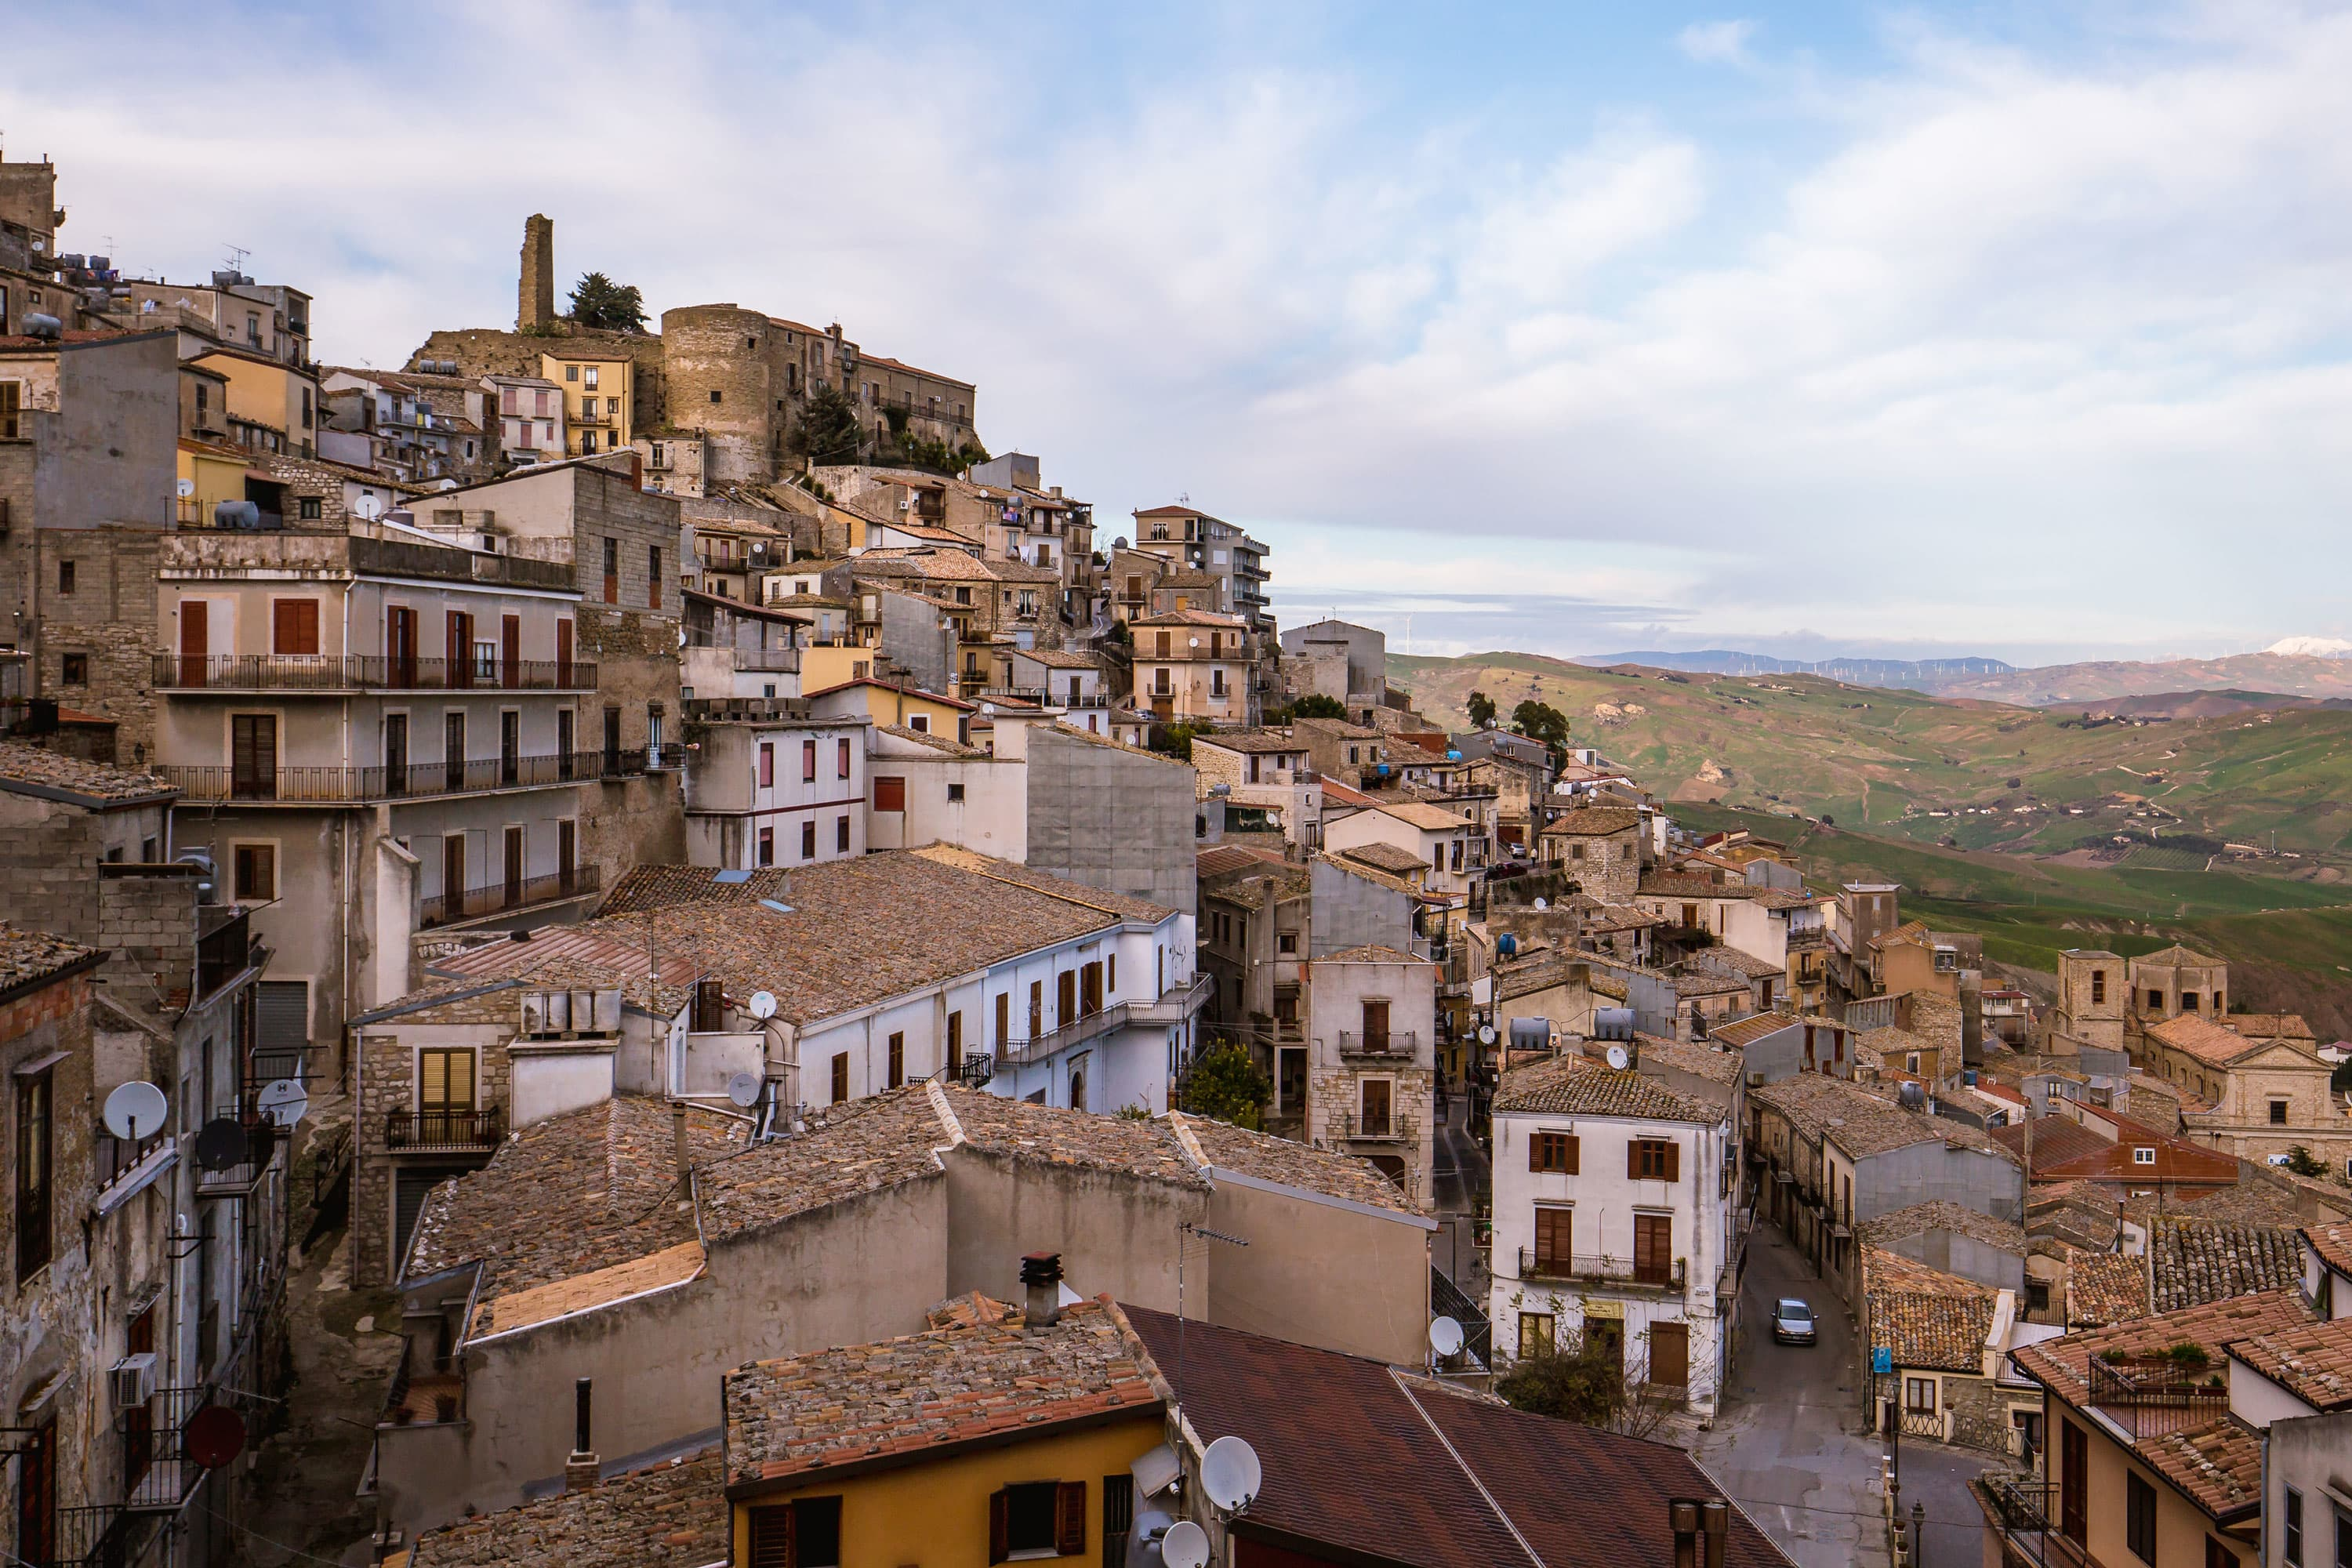 This town in Italy is giving away free houses — but there's a catch